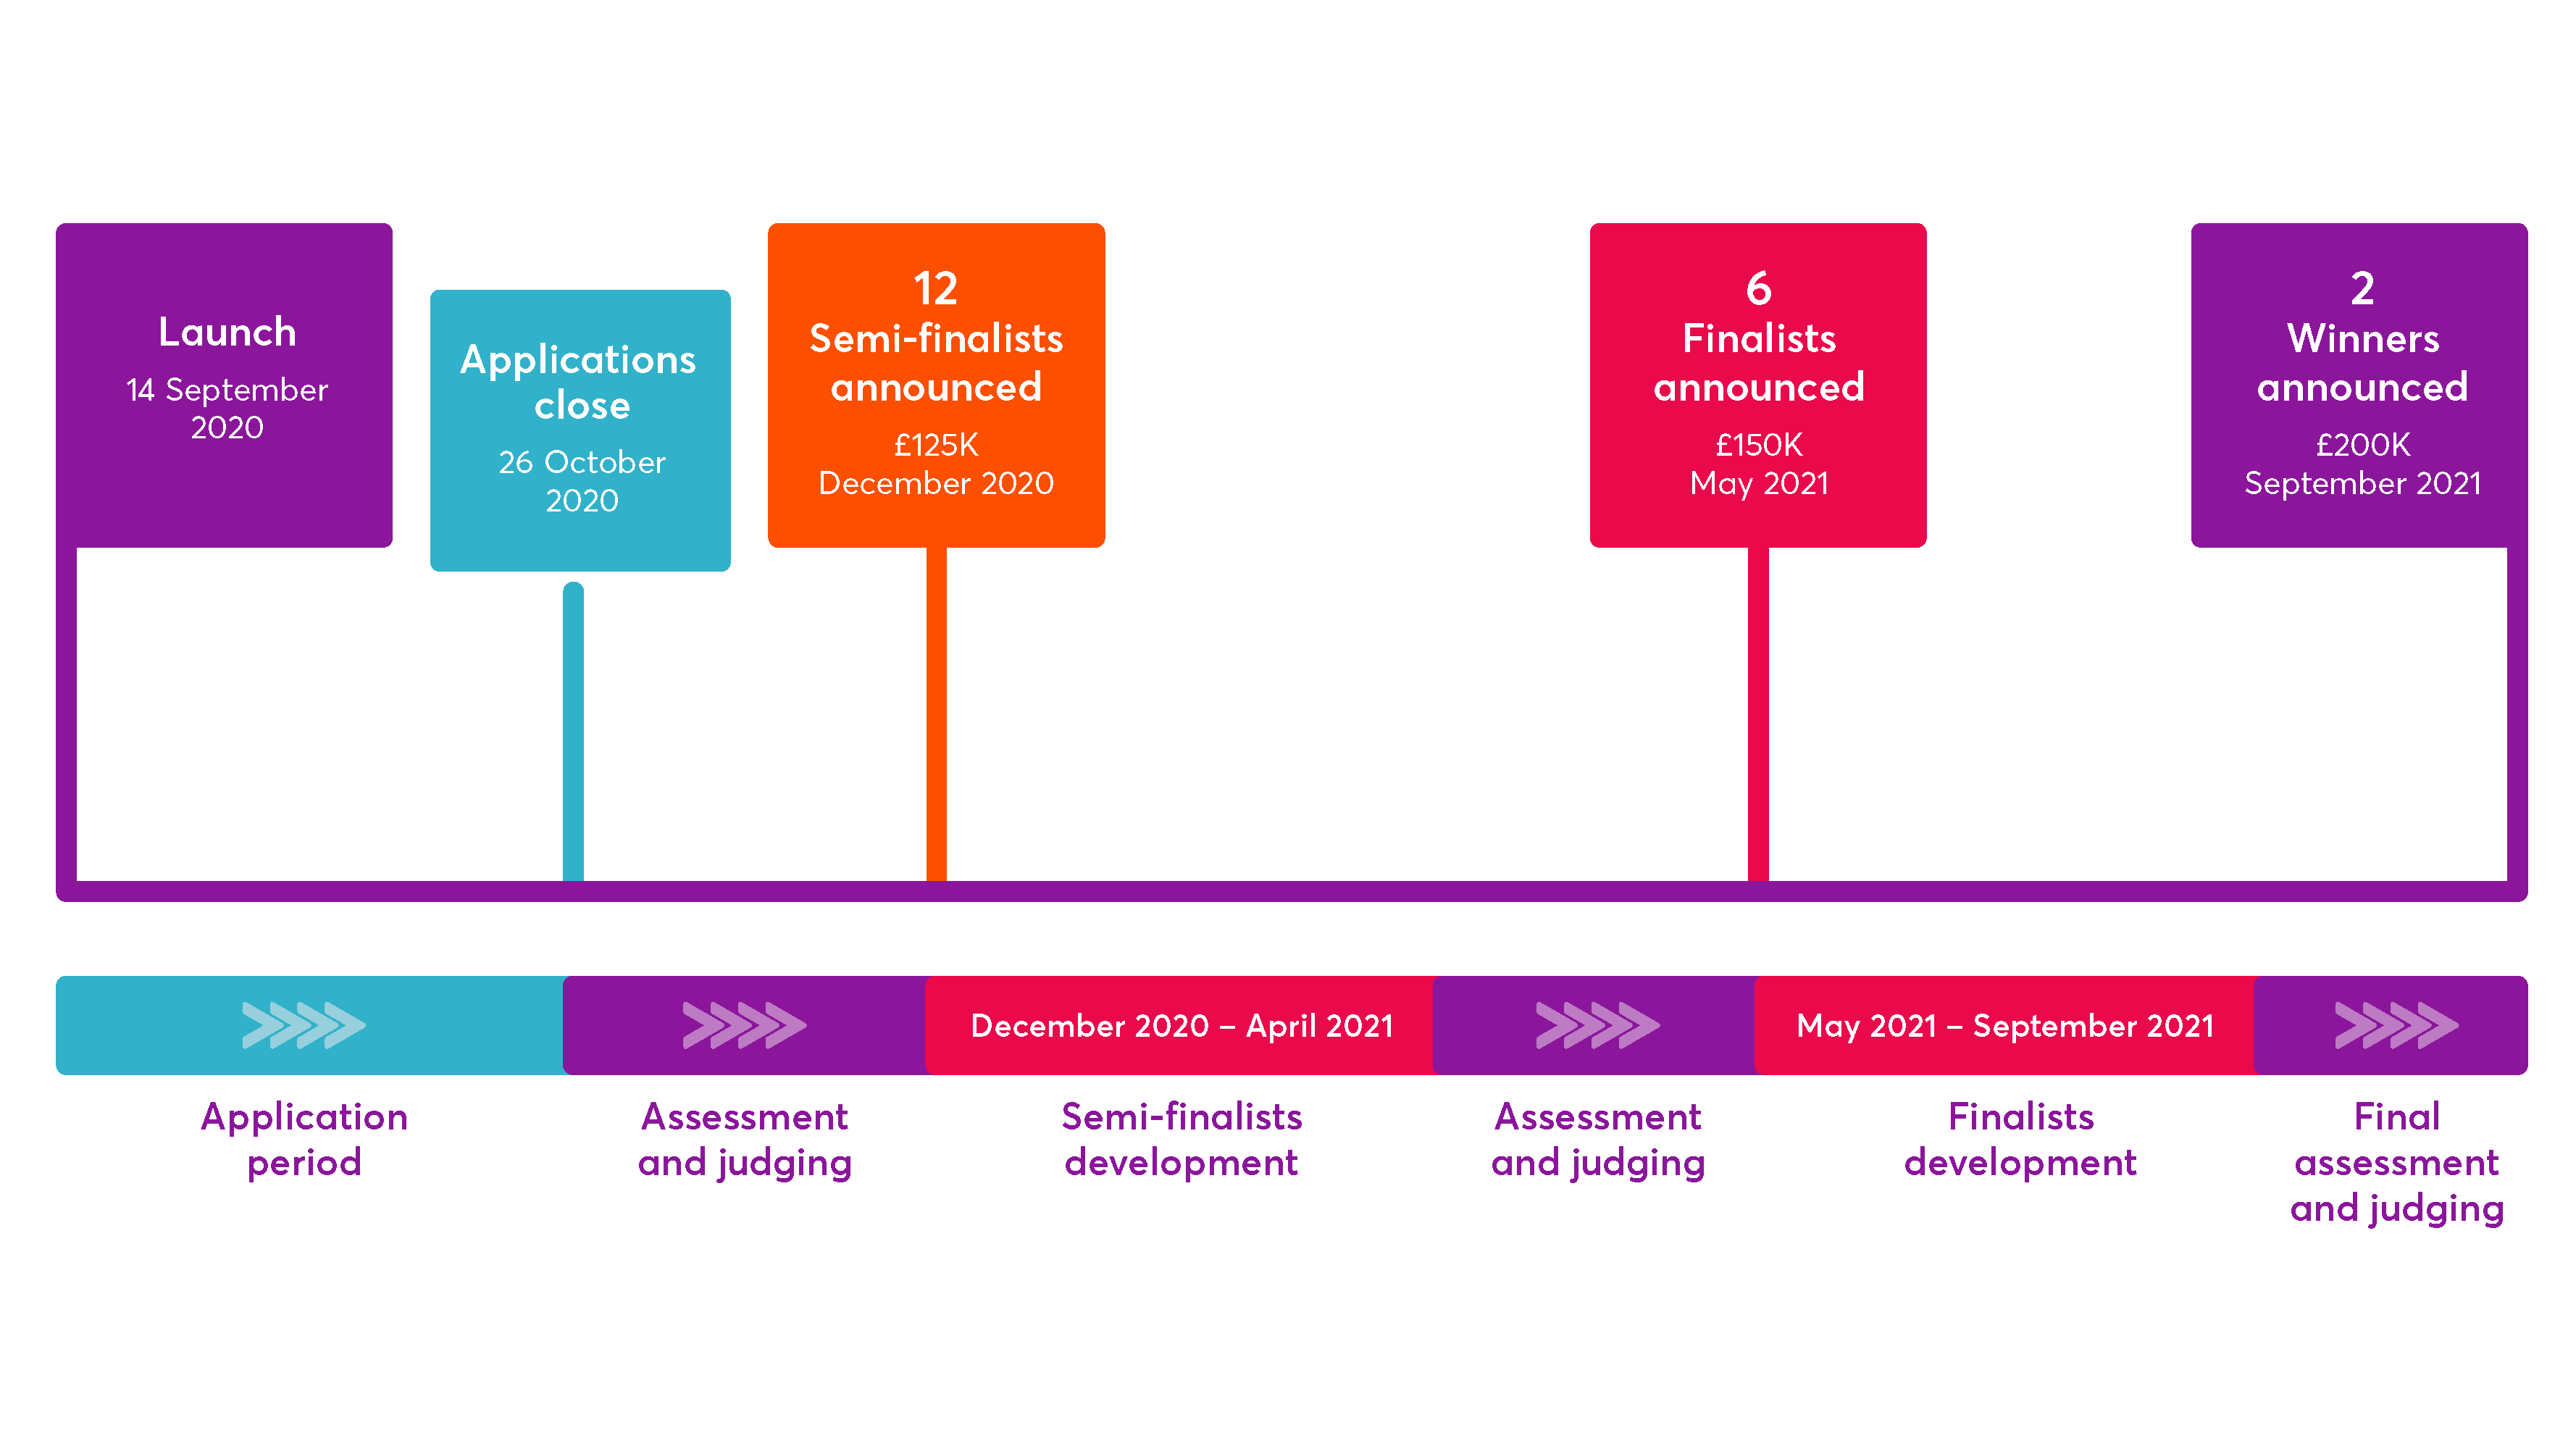 Rapid Recovery timeline image